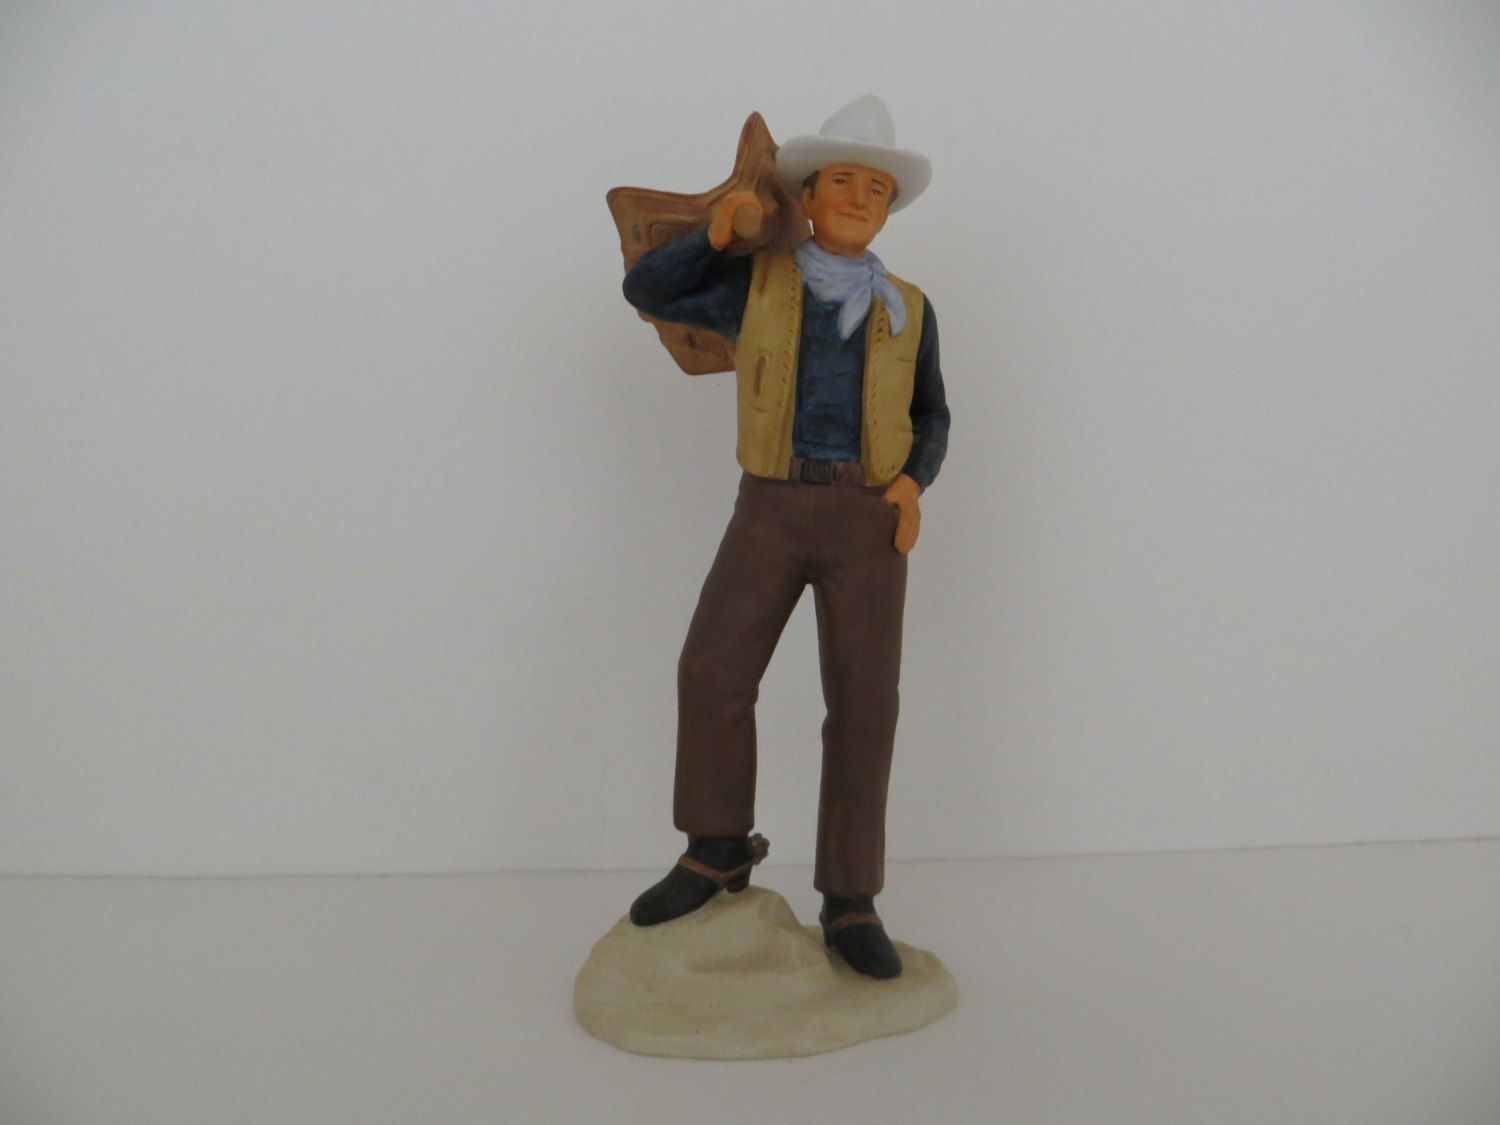 reduced price avon images of hollywood john wayne porcelain figurine as bob seton in dark command by rampasfinds on etsy vintage avon avon hollywood hollywood john wayne porcelain figurine